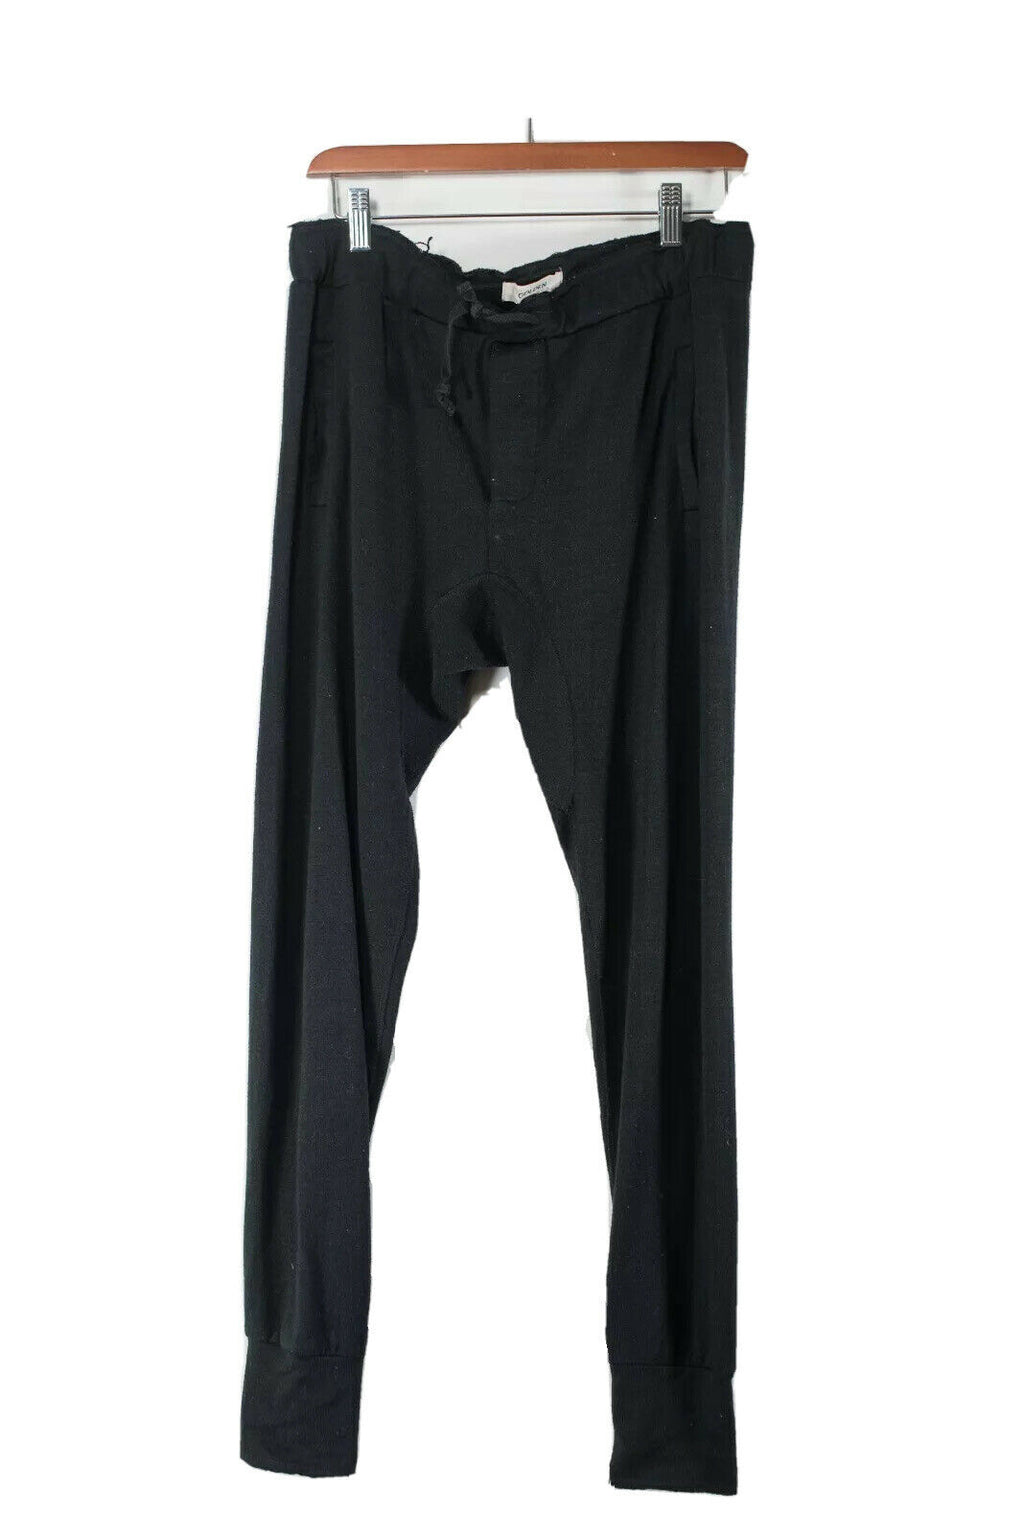 Aritzia Tna Golden Womens Small Black Jogger Sweatpants